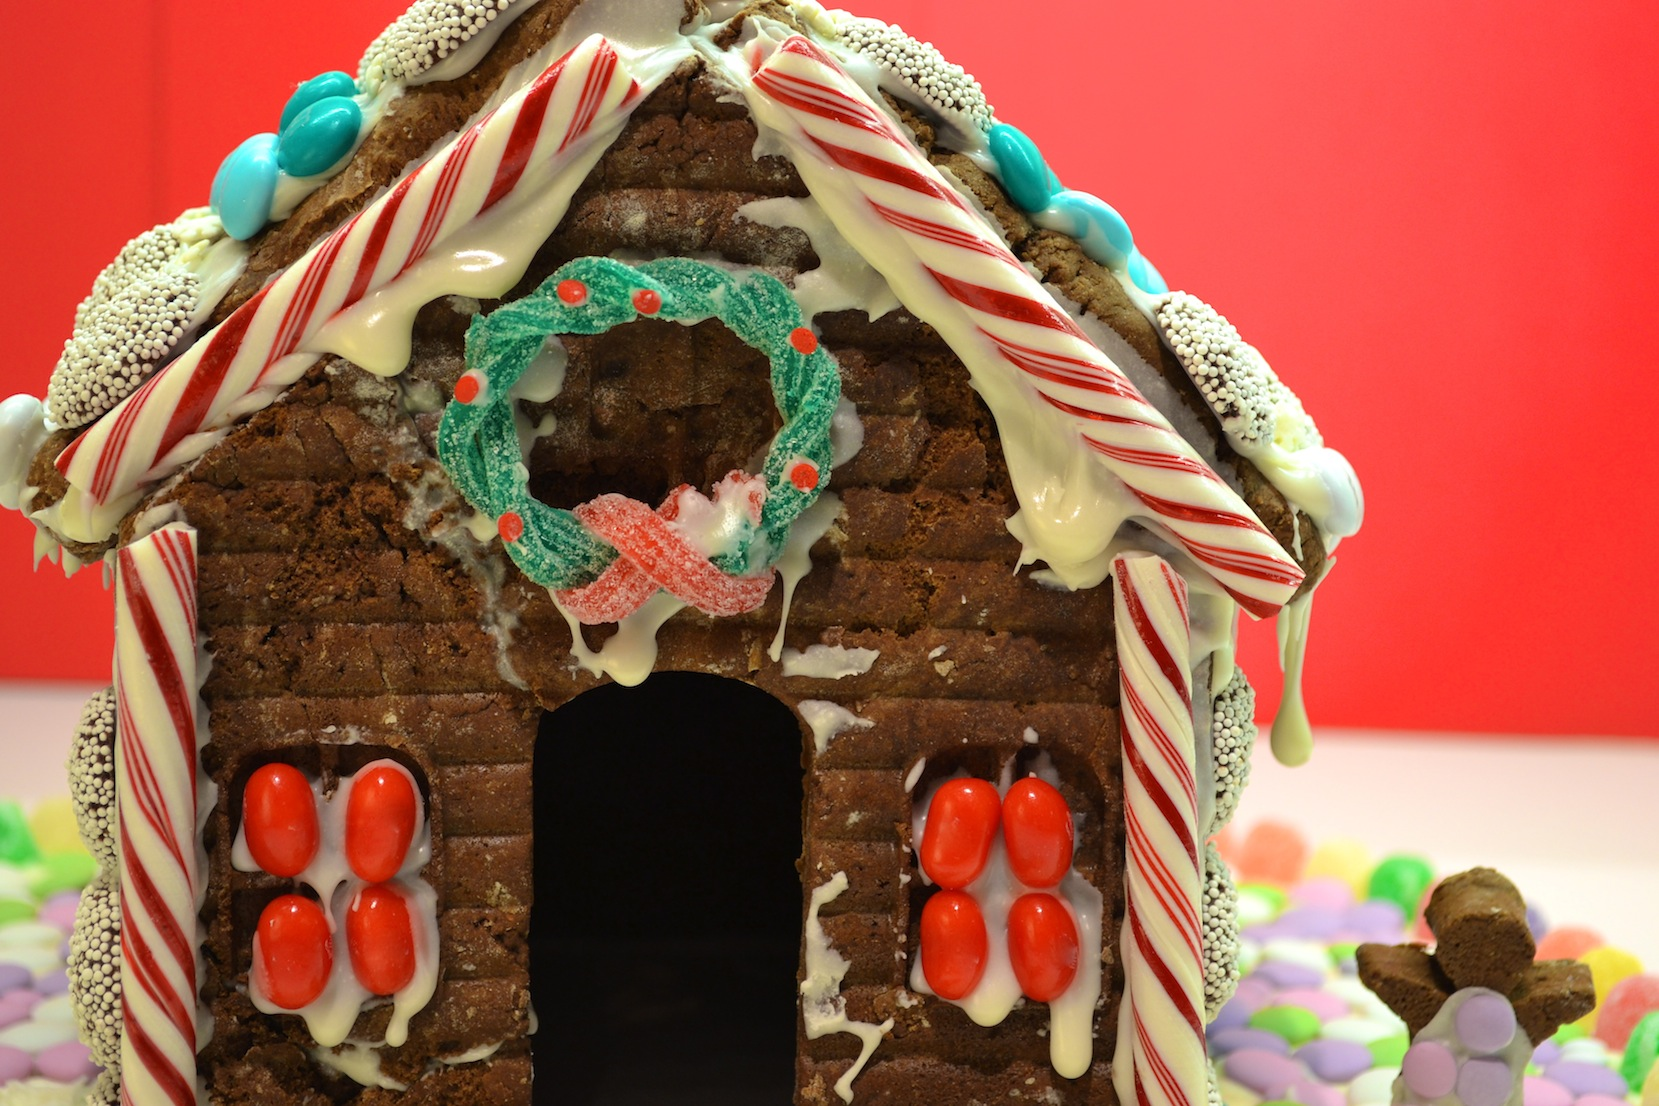 Gingerbread House Decorating Ideas Vegan Recipe For House & Icing